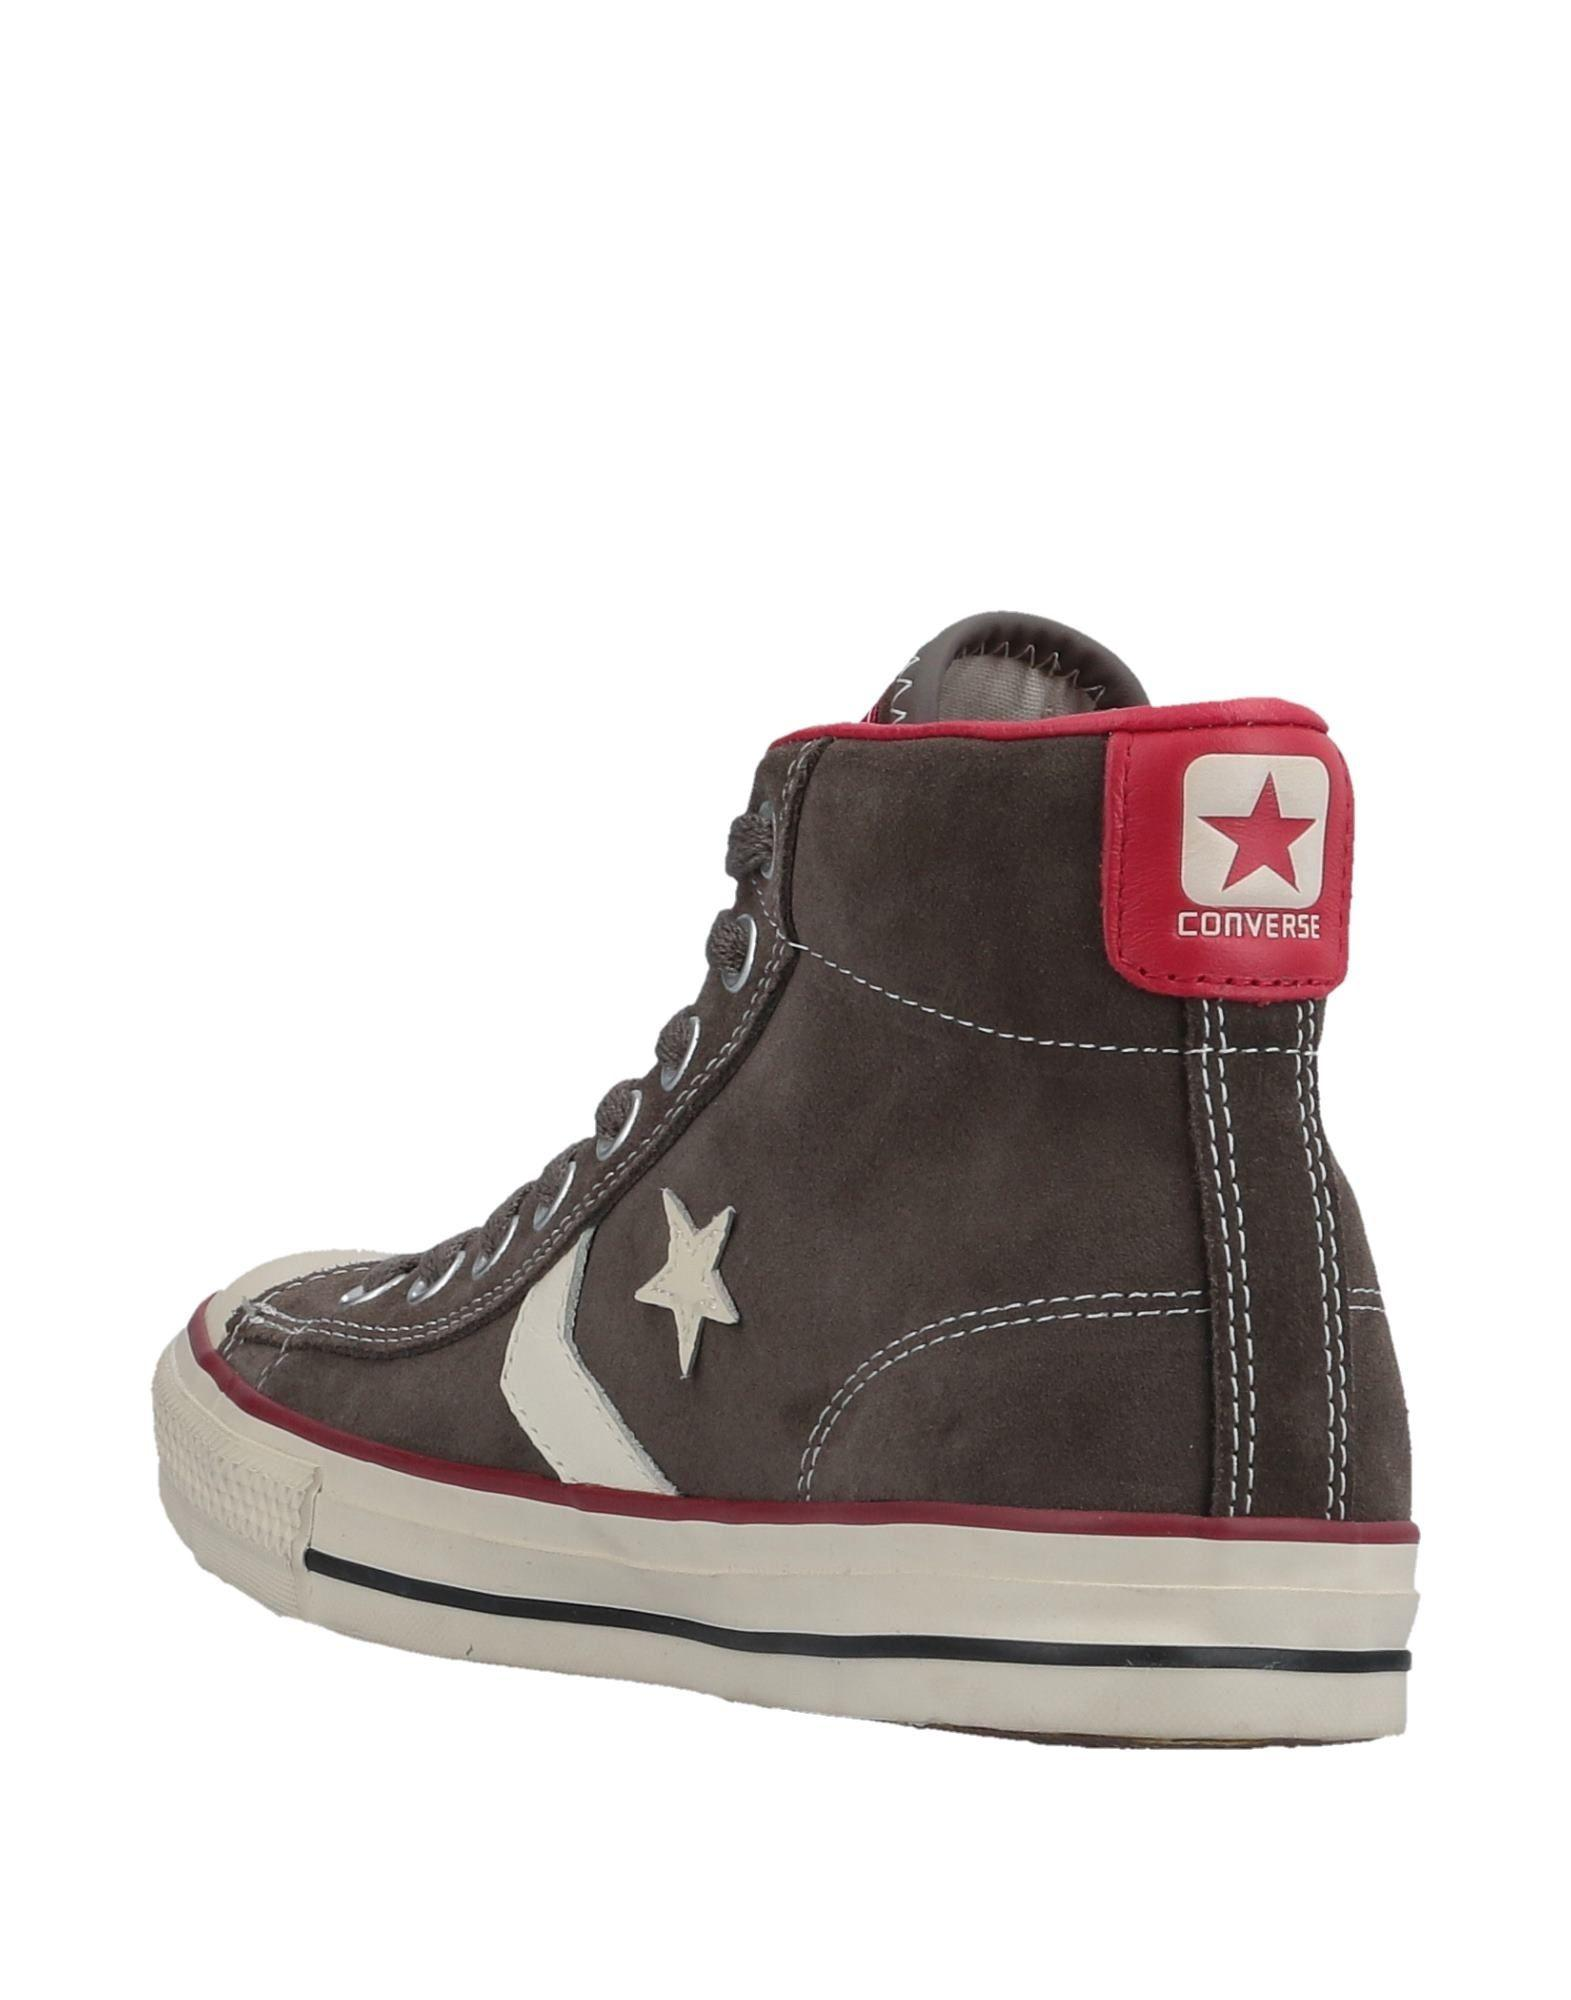 2a7cd4ef80393e Lyst - Converse High-tops   Sneakers in Brown for Men